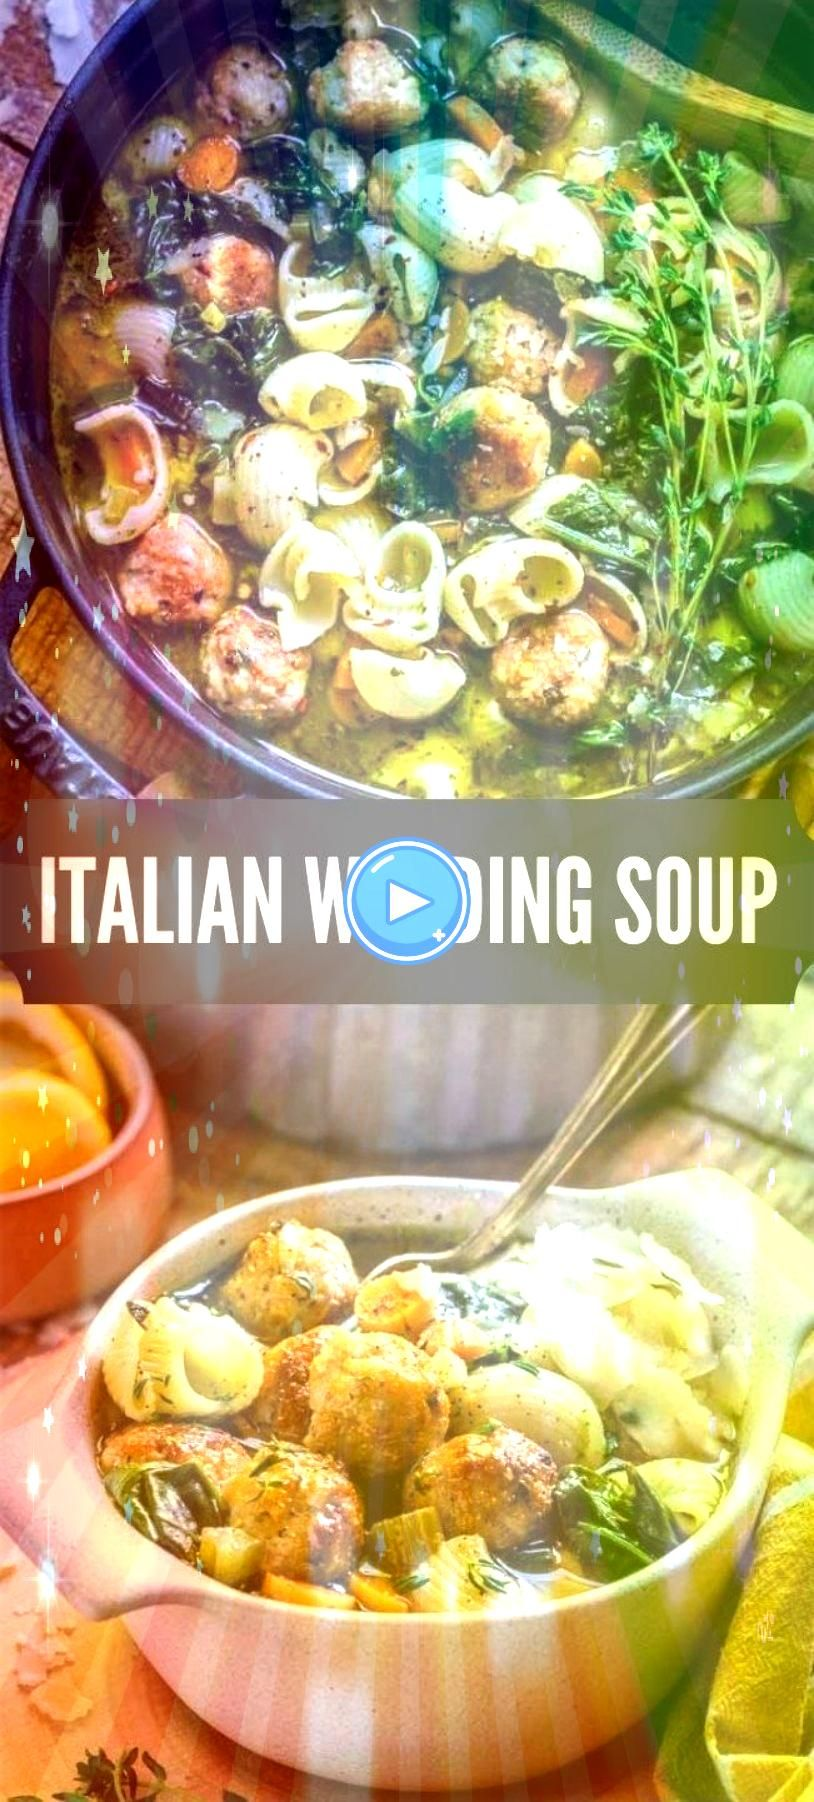 #italianweddingsoup #italianrecipes #souprecipes #weddingsoup #italianfood #noodlesoup #flavorful #meatballs #beautiful #textures #comfort #healthy #italian #flavors #recipesBEST ITALIAN WEDDING SOUP RECIPE! This rustic noodle soup is packed with beautiful colors, flavors and textures. Enjoy a warm hearty bowl of this healthy flavorful soup. When it comes to comfort food, this recipe is a real winner!BEST ITALIAN WEDDING SOUP RECIPE! This rustic noodle soup is packed with beautiful colors... #italianweddingsoup